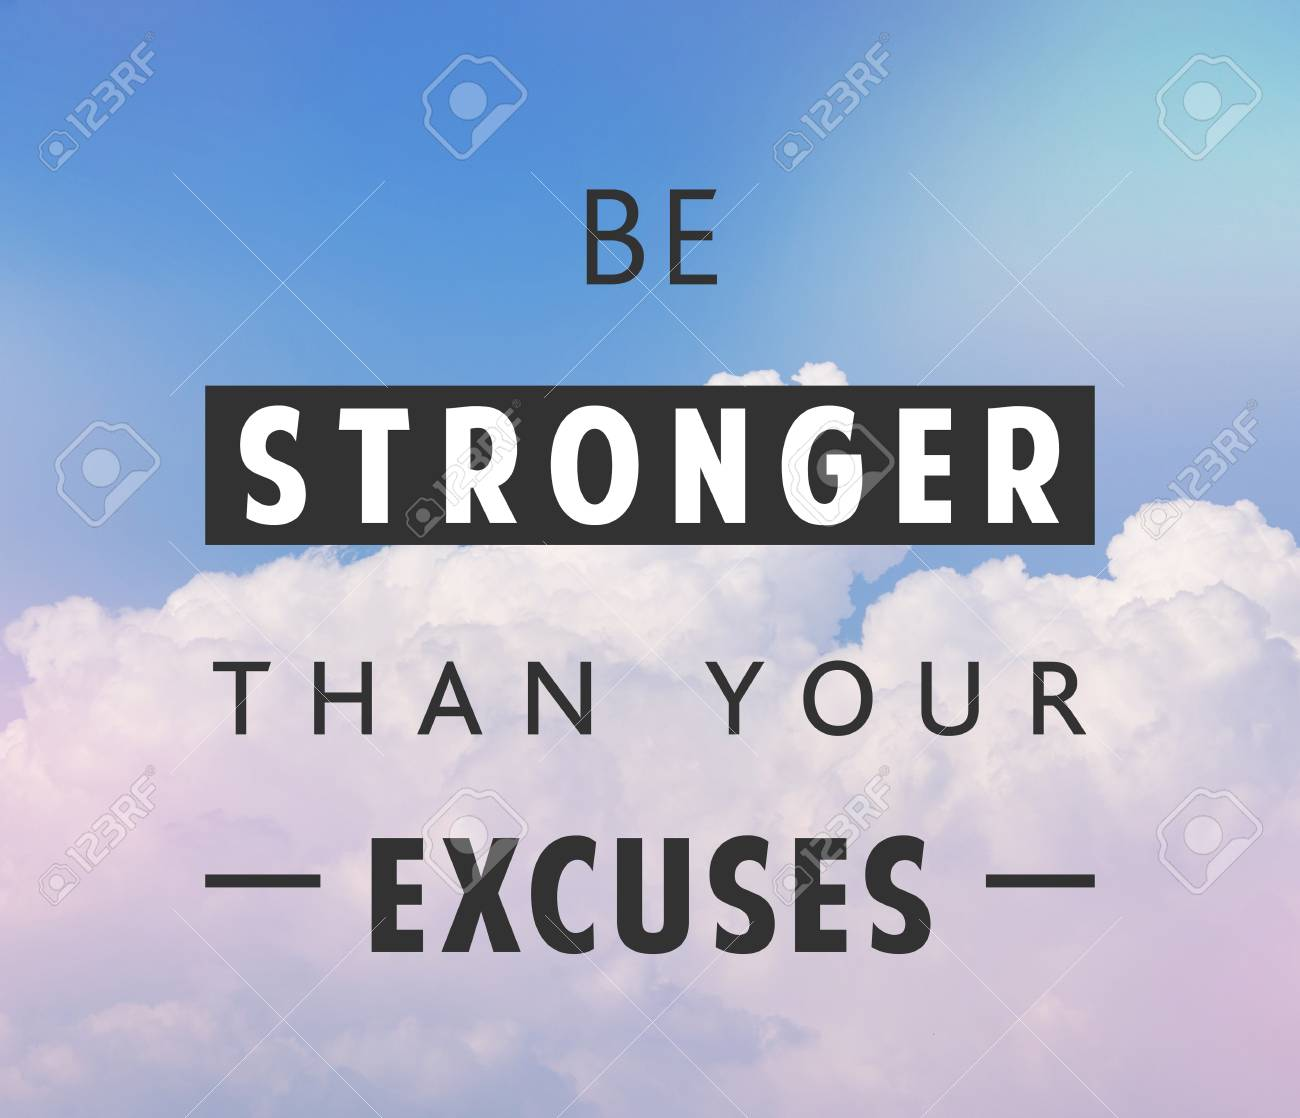 Be stronger than yours excuses, motivational quote in clouds background - 96934643